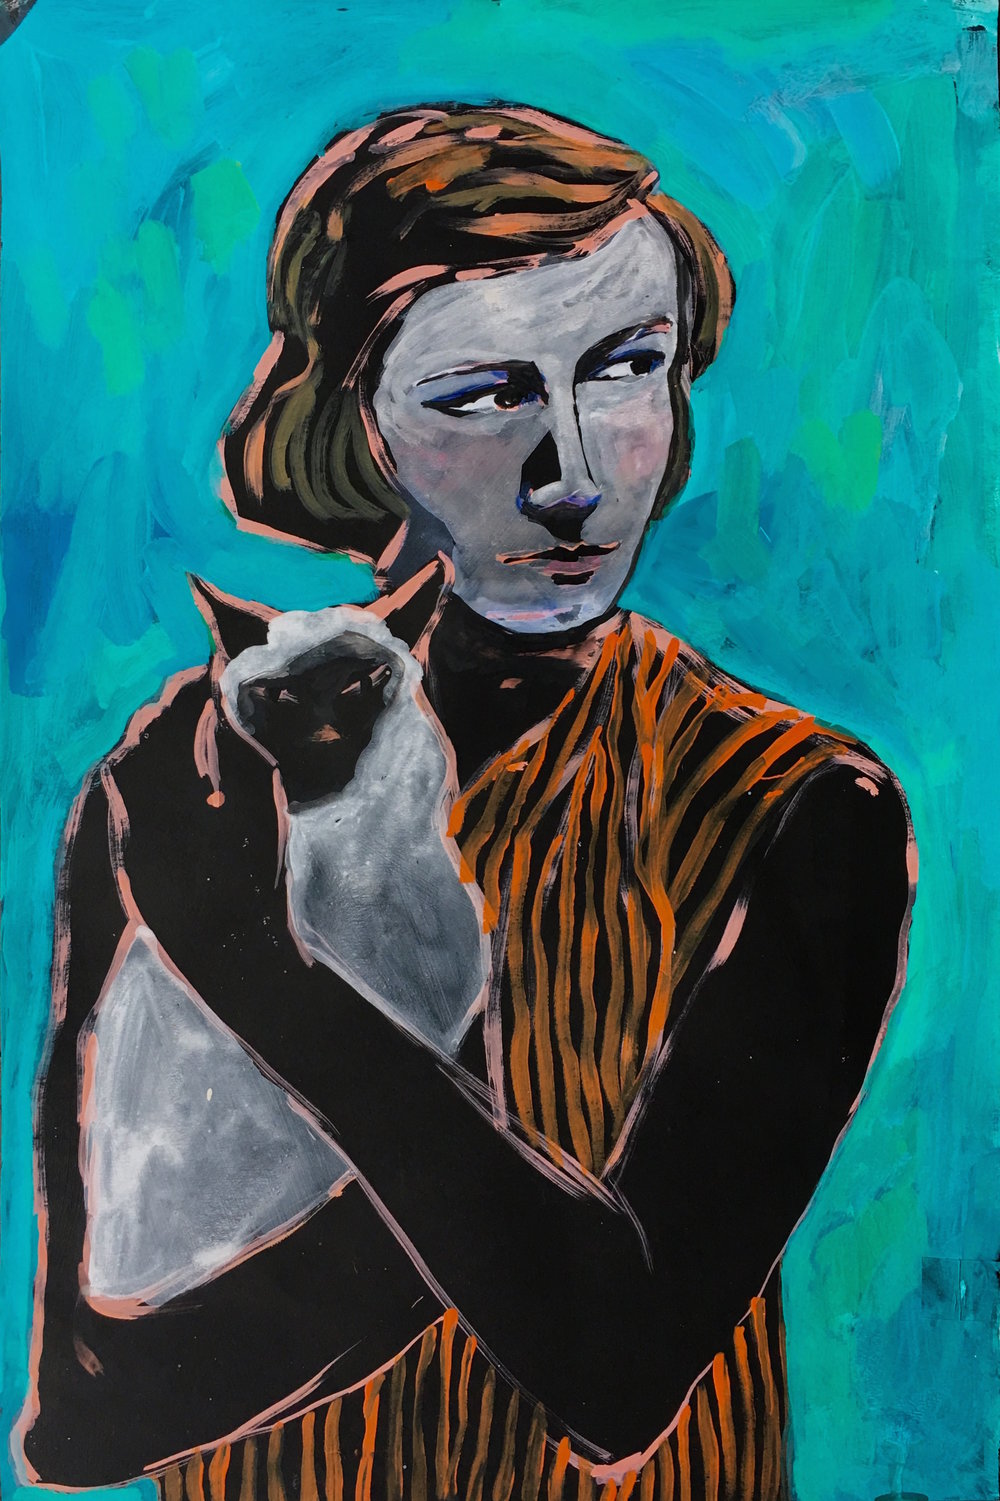 PATRICIA HIGHSMITH    acrylic, watercolor, gouache on paper, 24 in. x 16.5 in., 2016